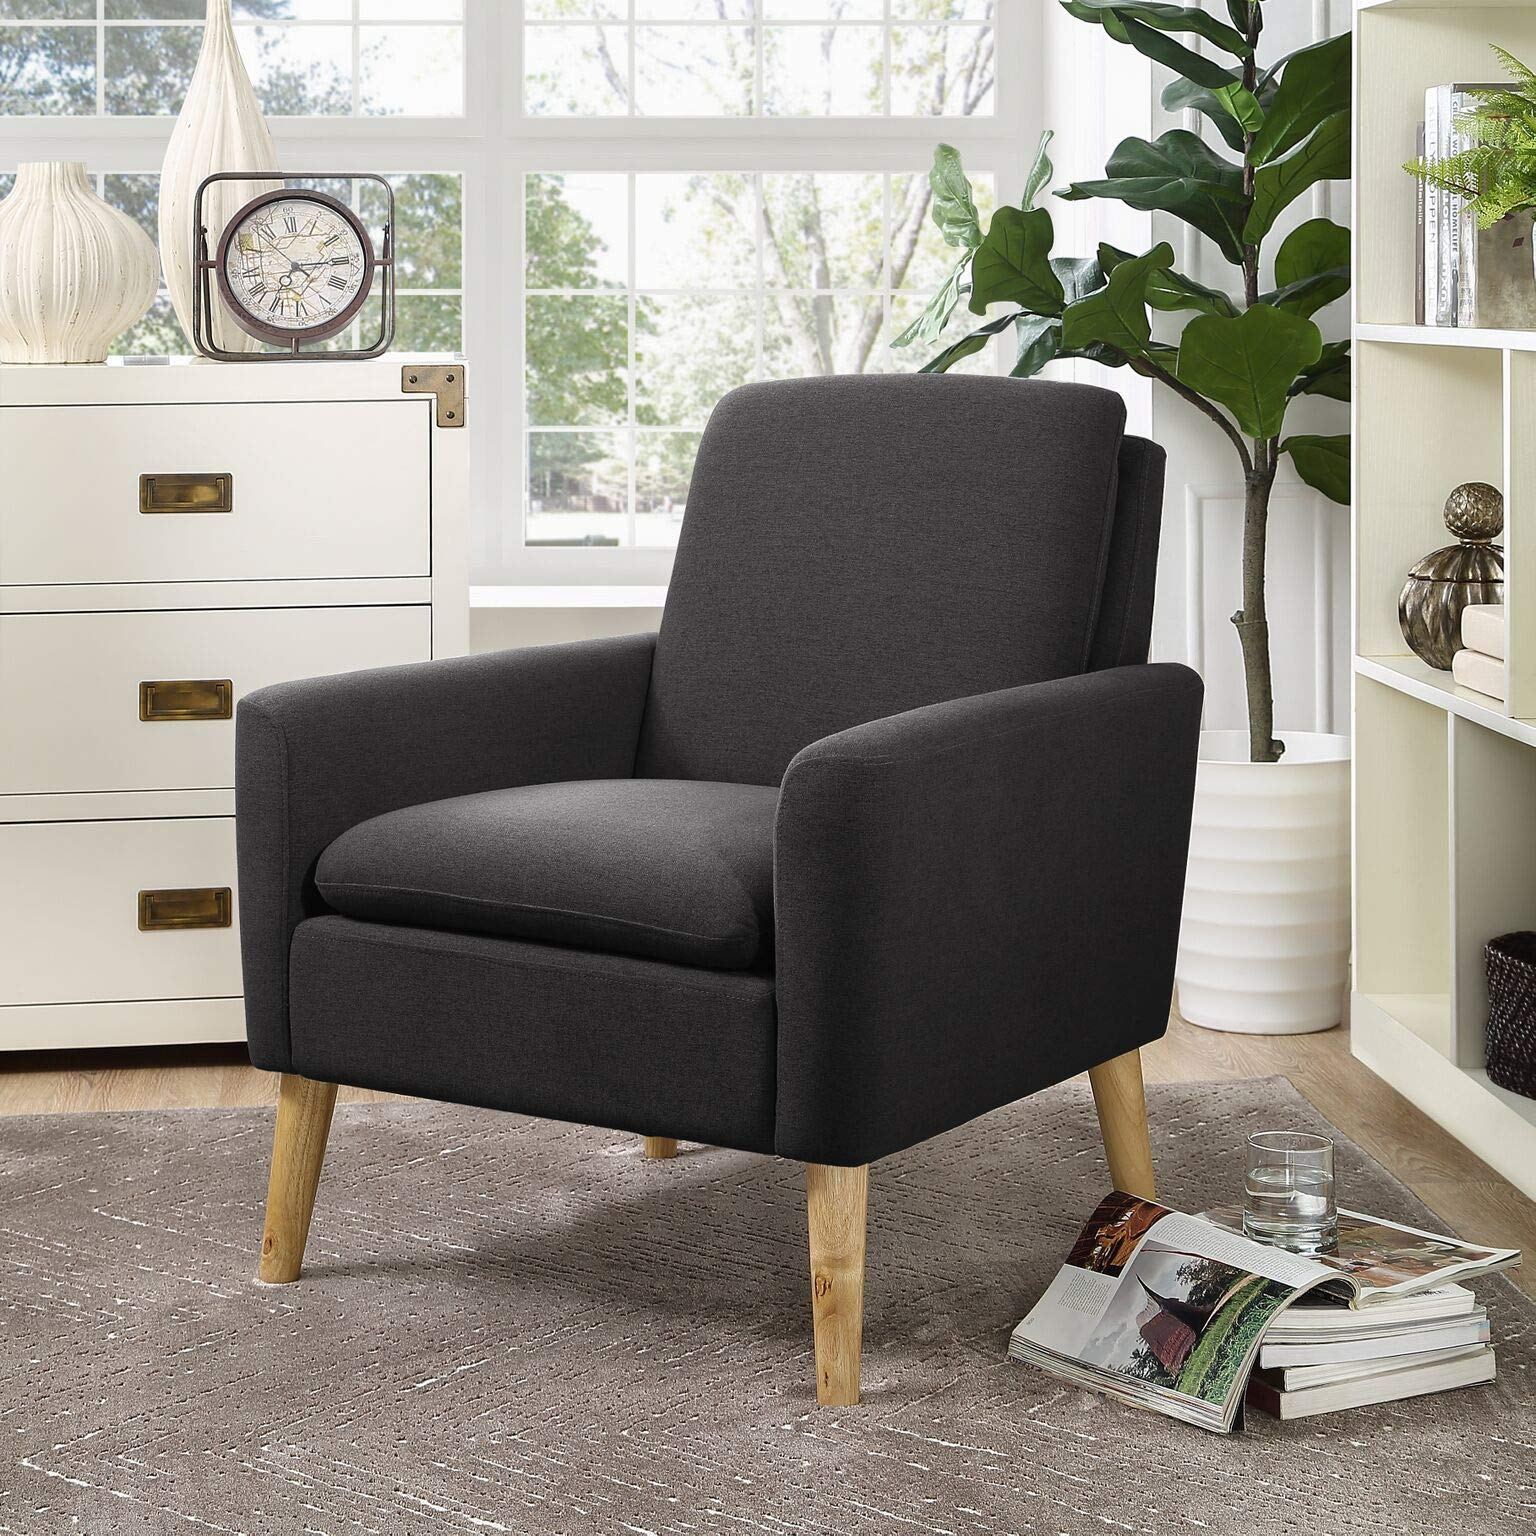 Infini Furnishings IND7902JB Accent Armchair, One Size, Anthracite by INFINI FURNISHINGS